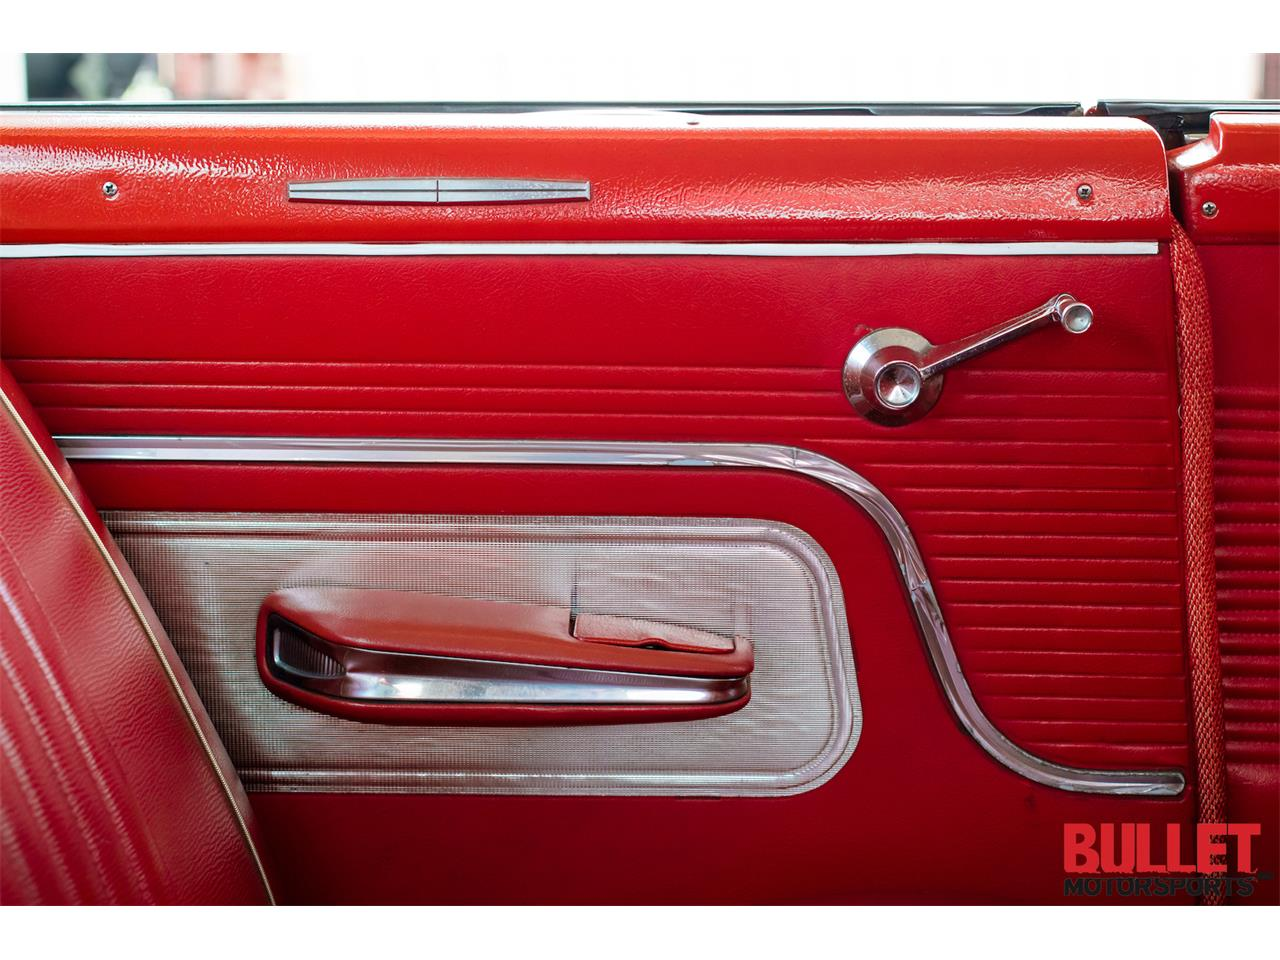 Large Picture of 1963 Ford Galaxie located in Florida - $17,950.00 - M69S